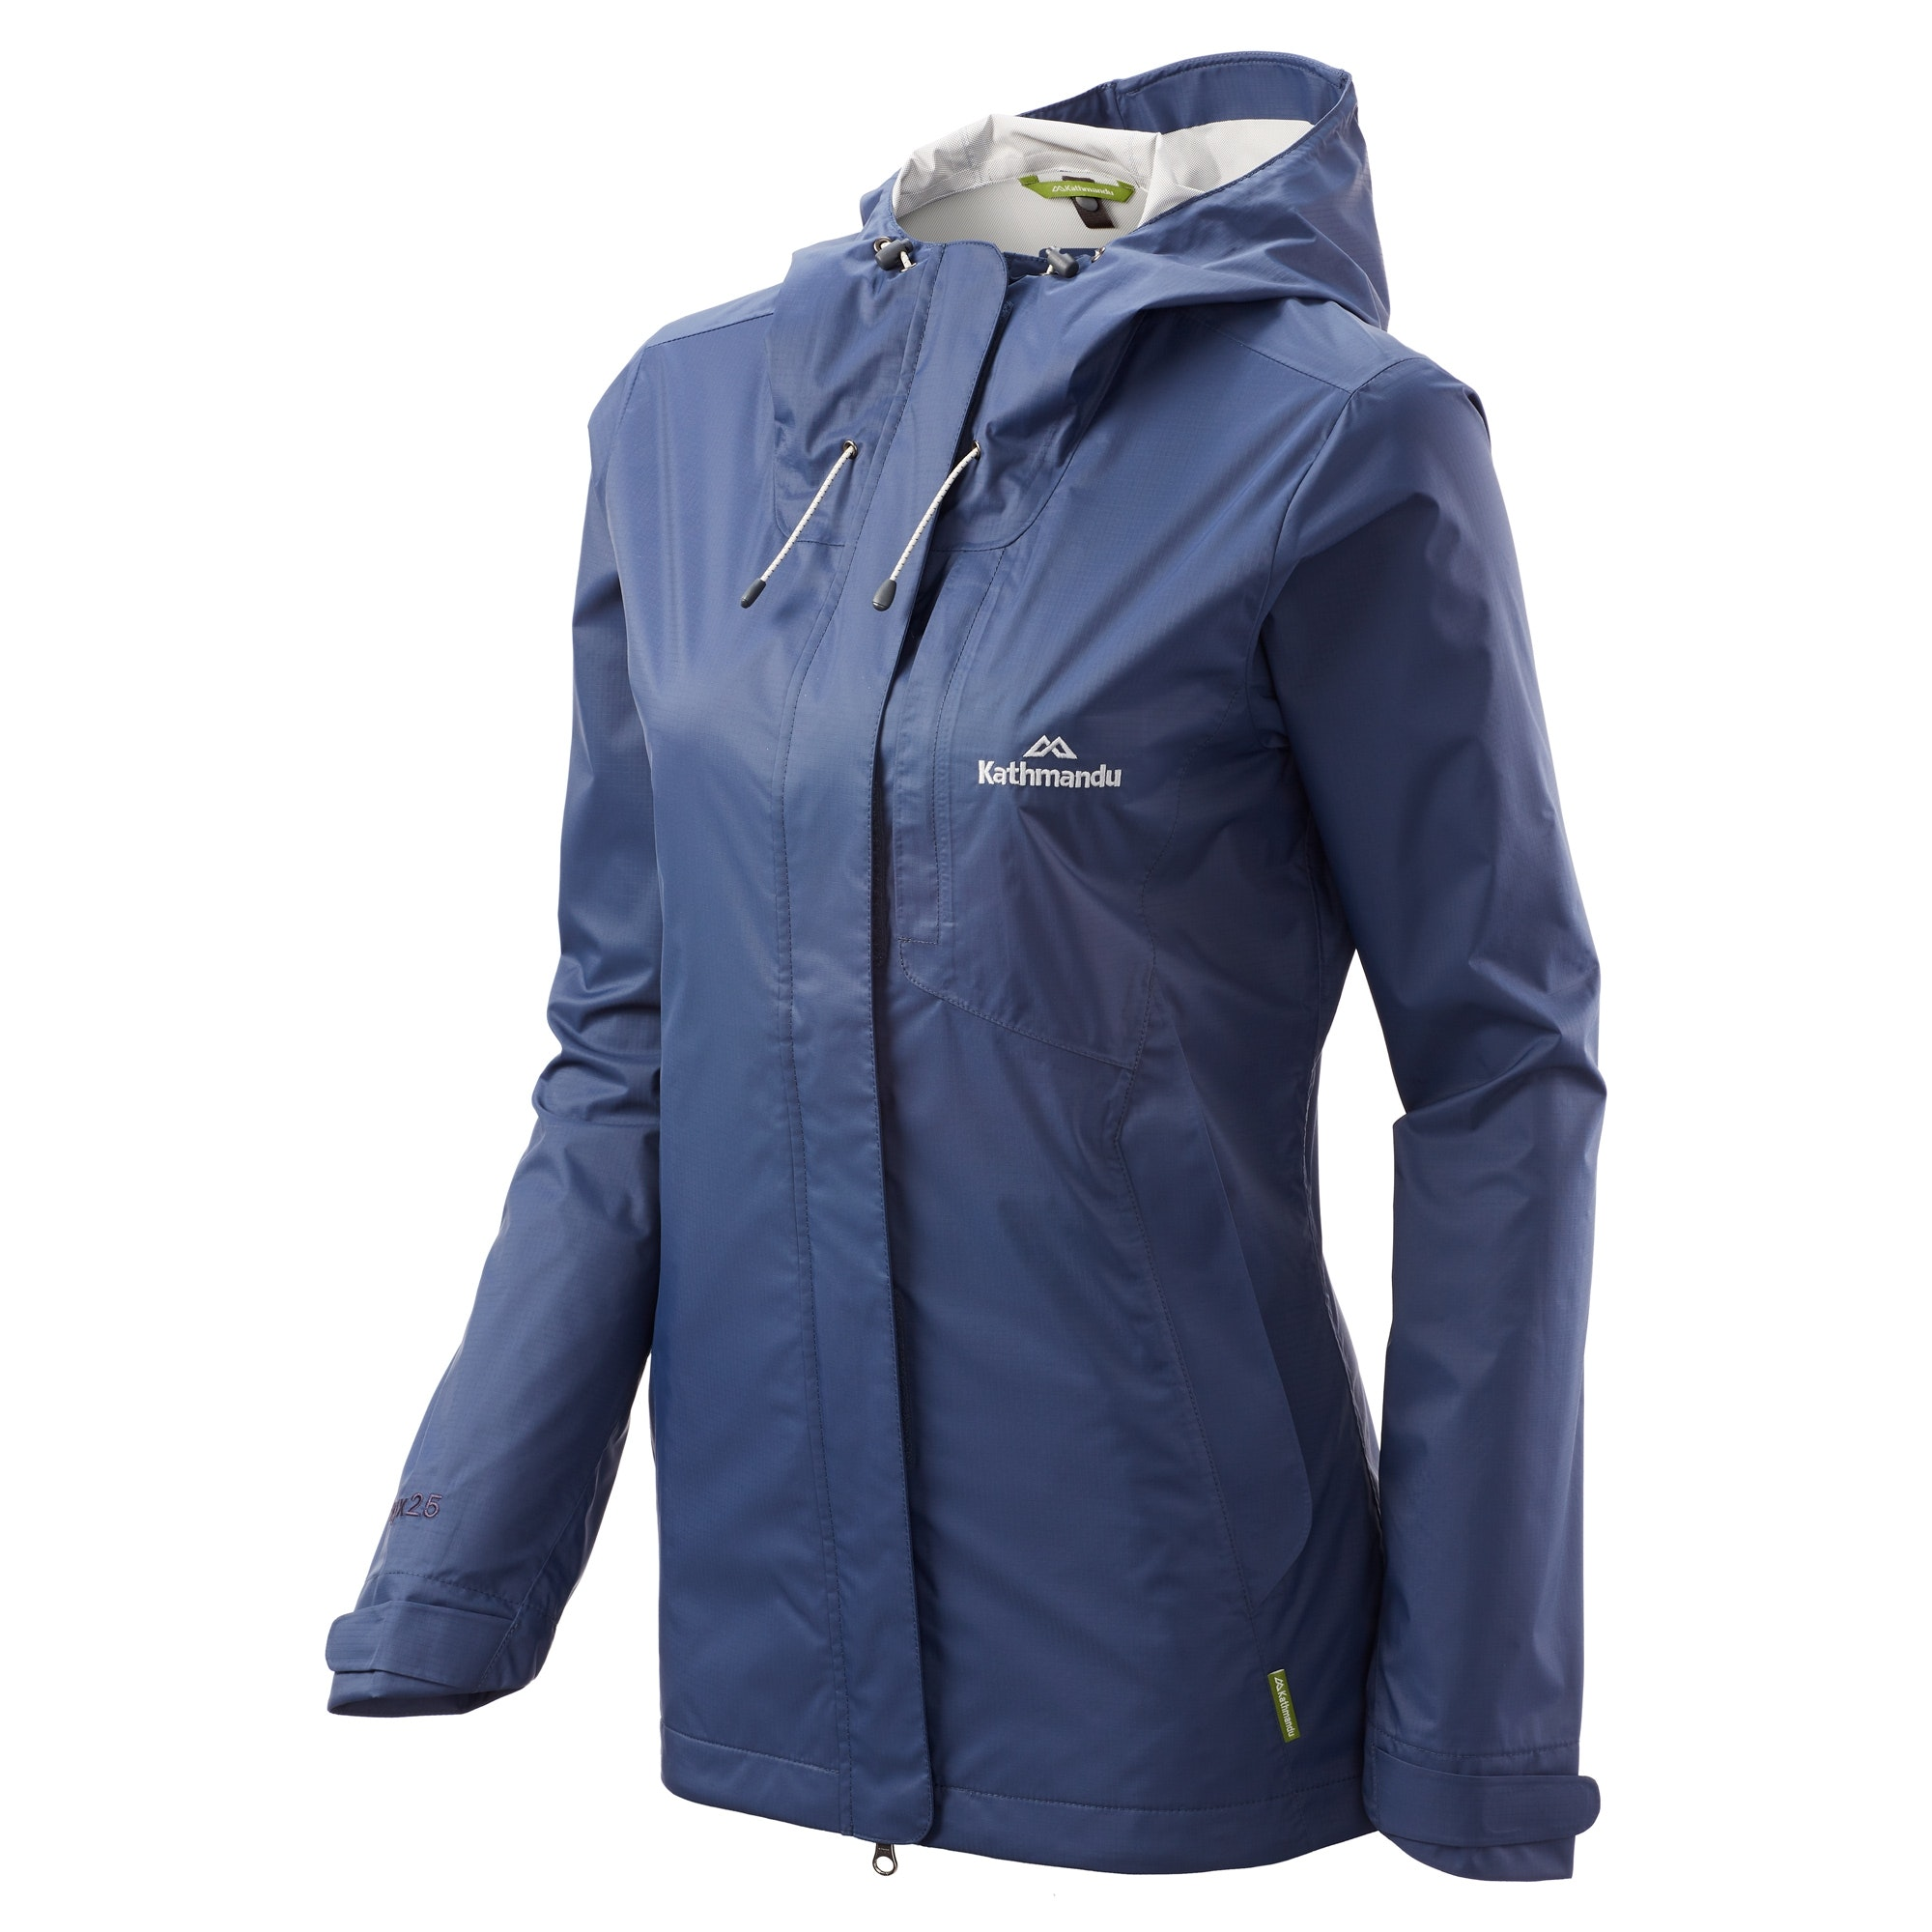 NEW-Kathmandu-Trailhead-Womens-Lightweight-Hiking-Waterproof-Rain-Jacket-Coat